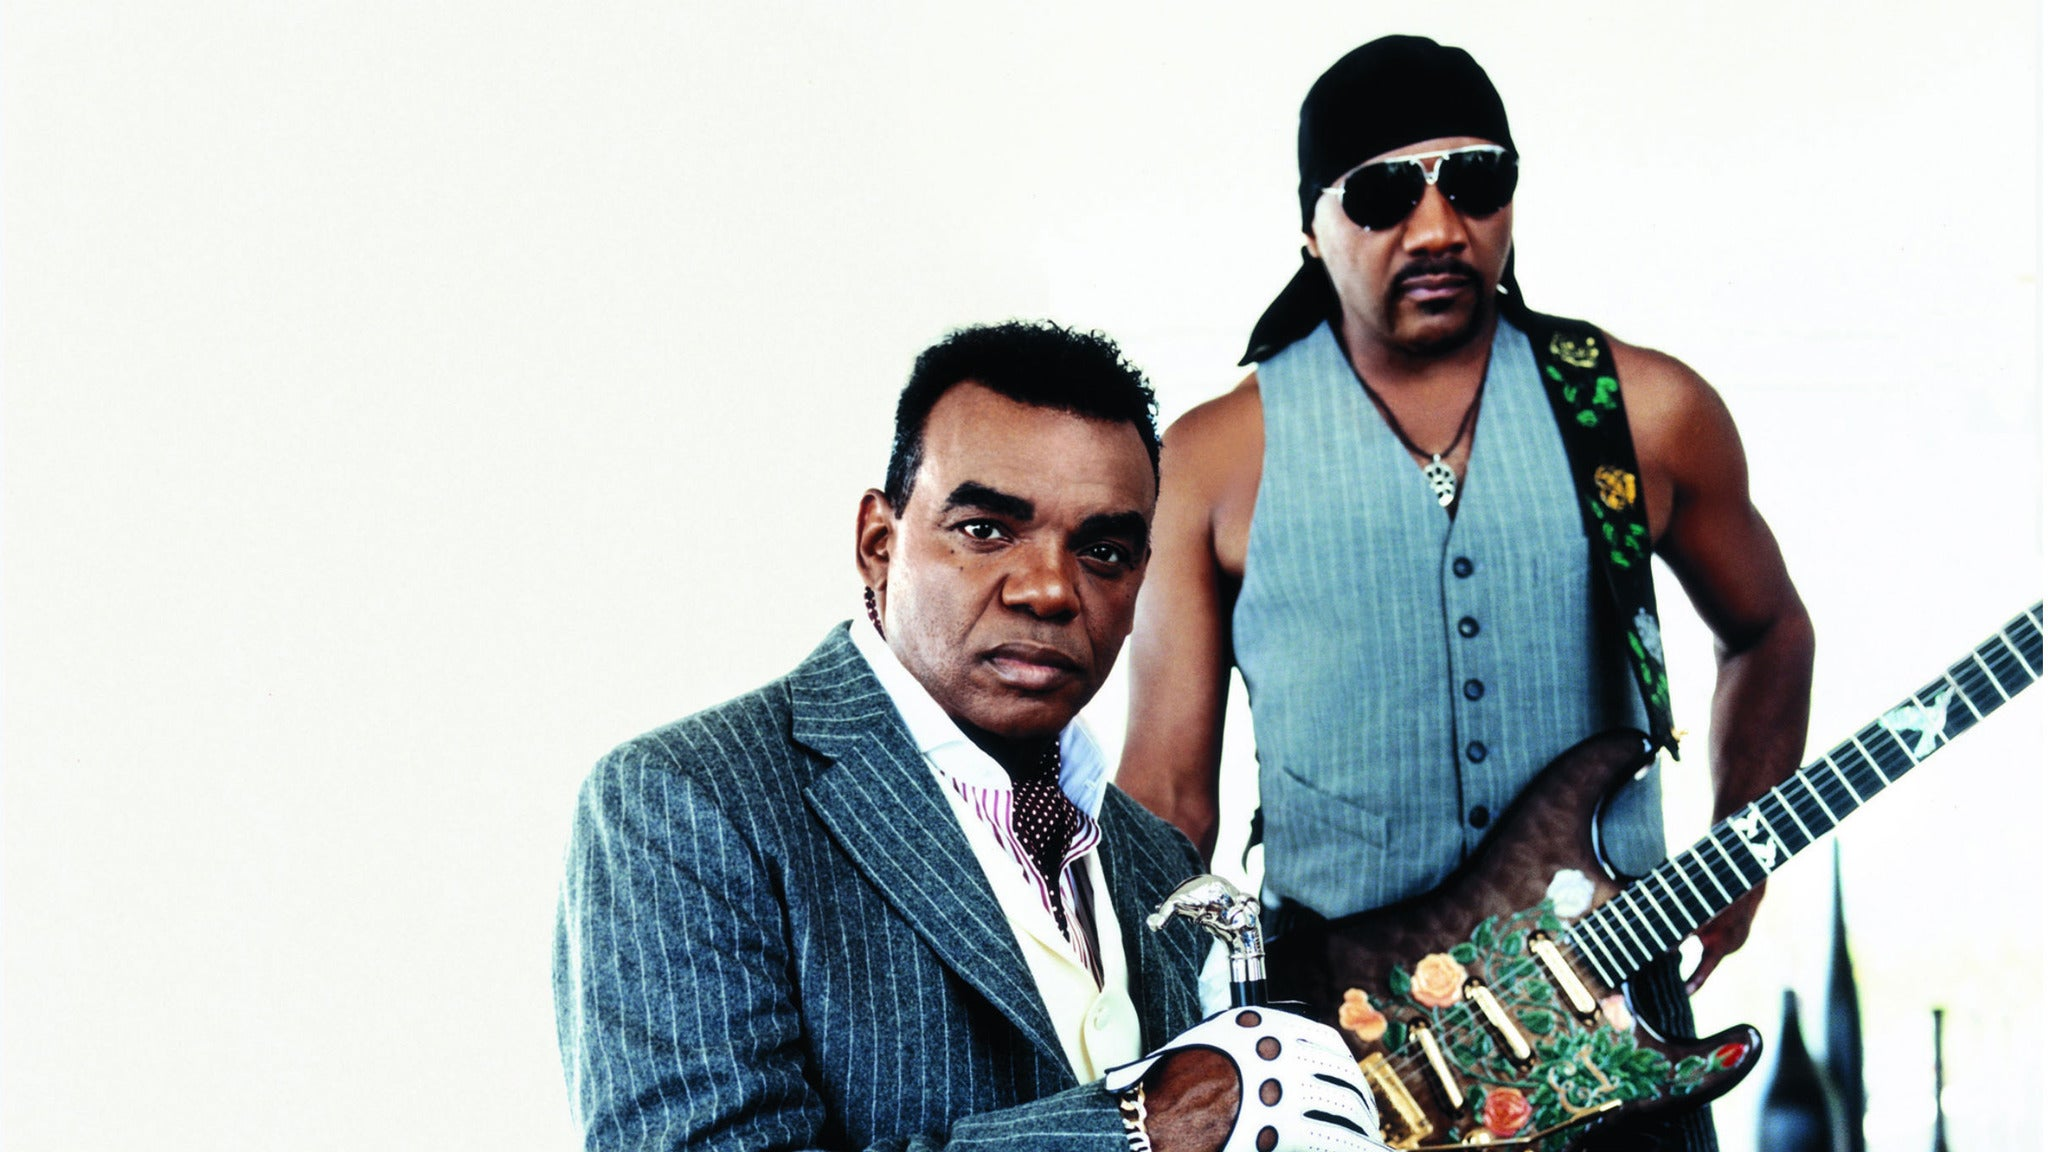 BUFFET MEAL at Ironstone Amphitheatre: The Isley Brothers